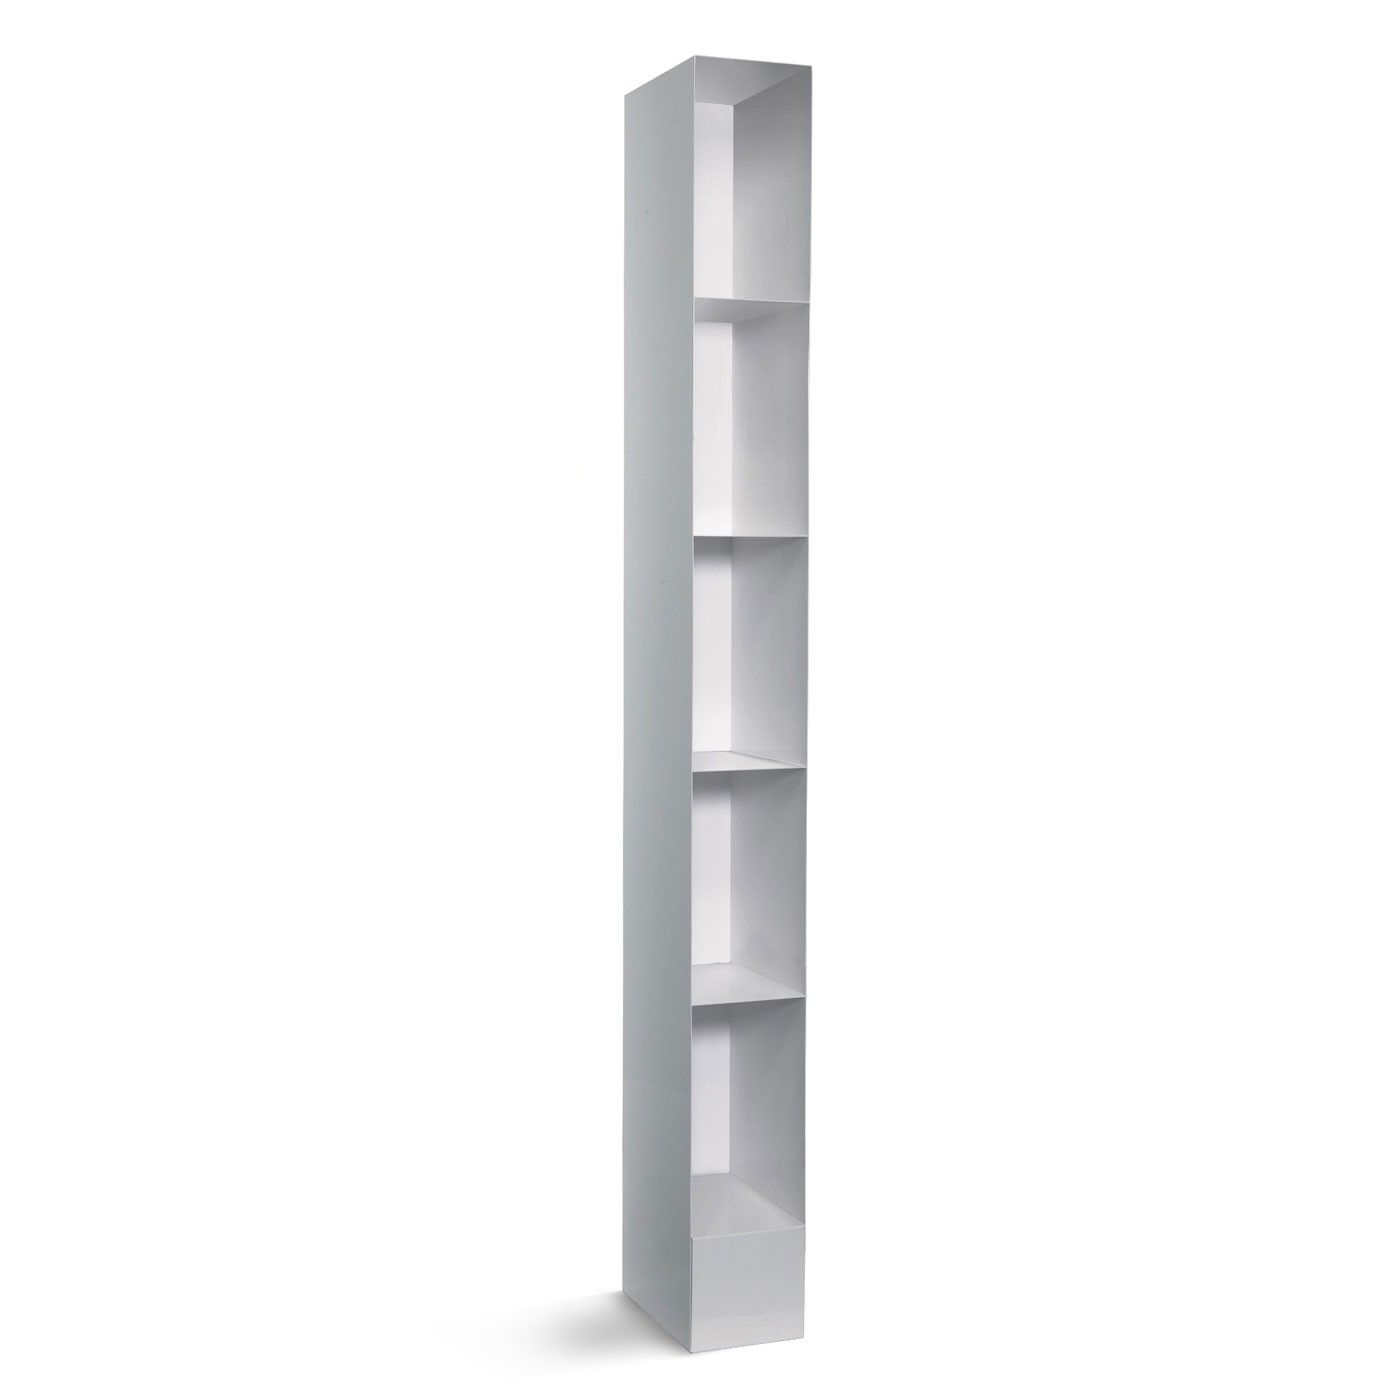 Totem Bookcase Is A Tall Narrow Available In Simple Black Or White Color Finishes Modern Crafted With Powder Coated Steel